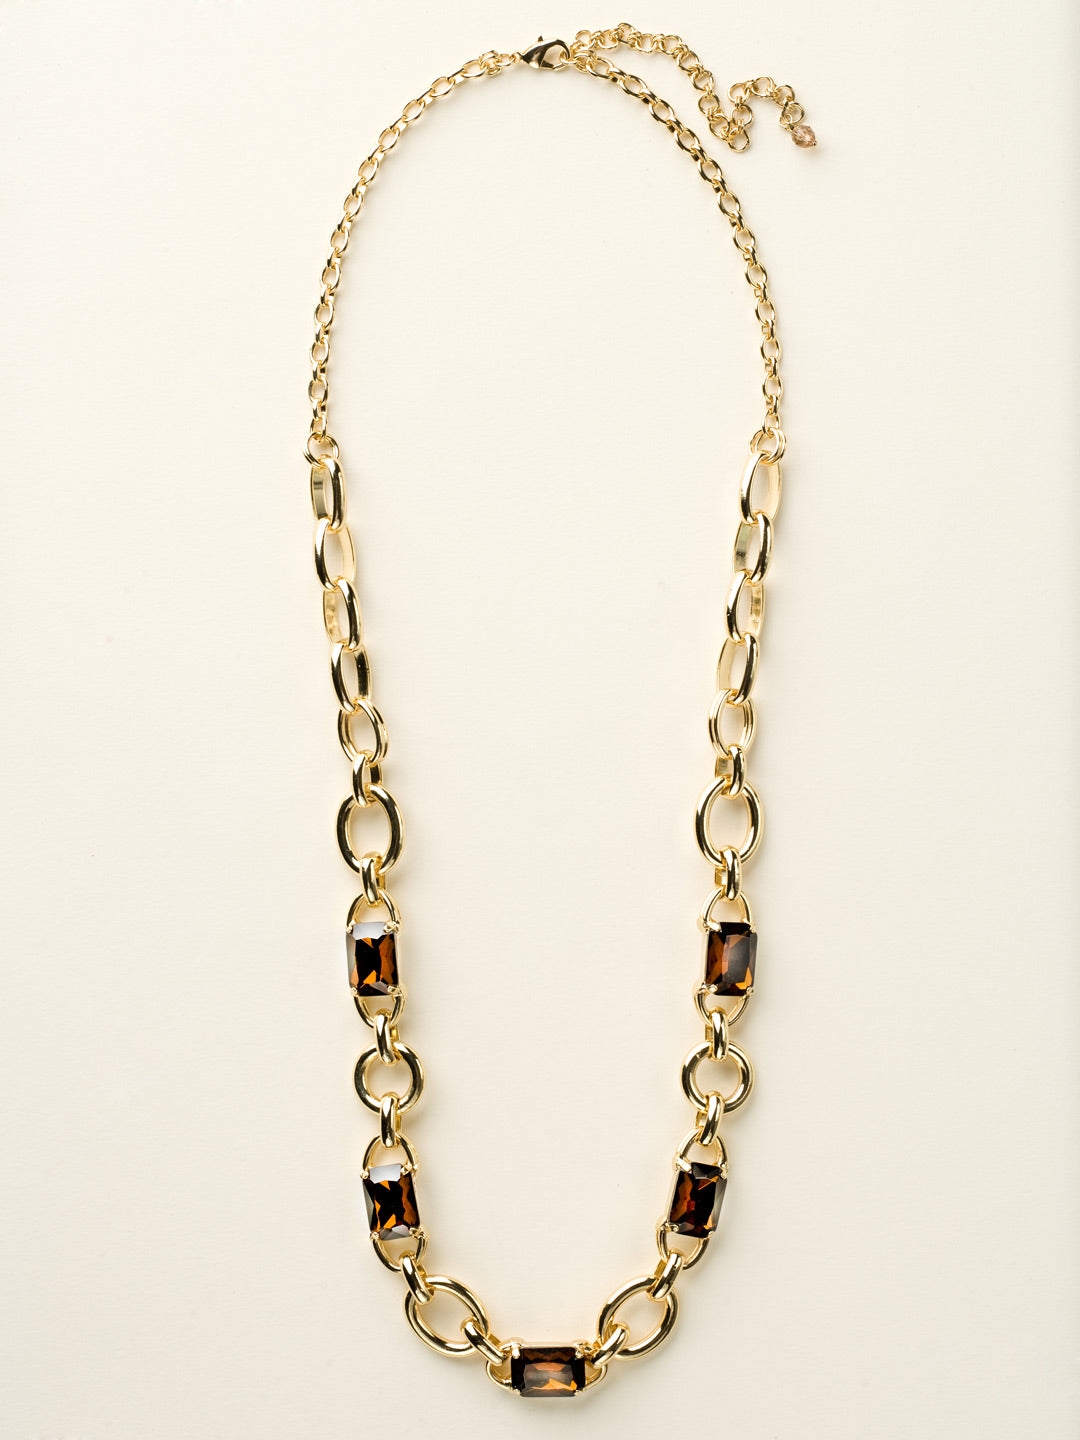 Bold Emerald and Chain Necklace - NCU14BGGOL